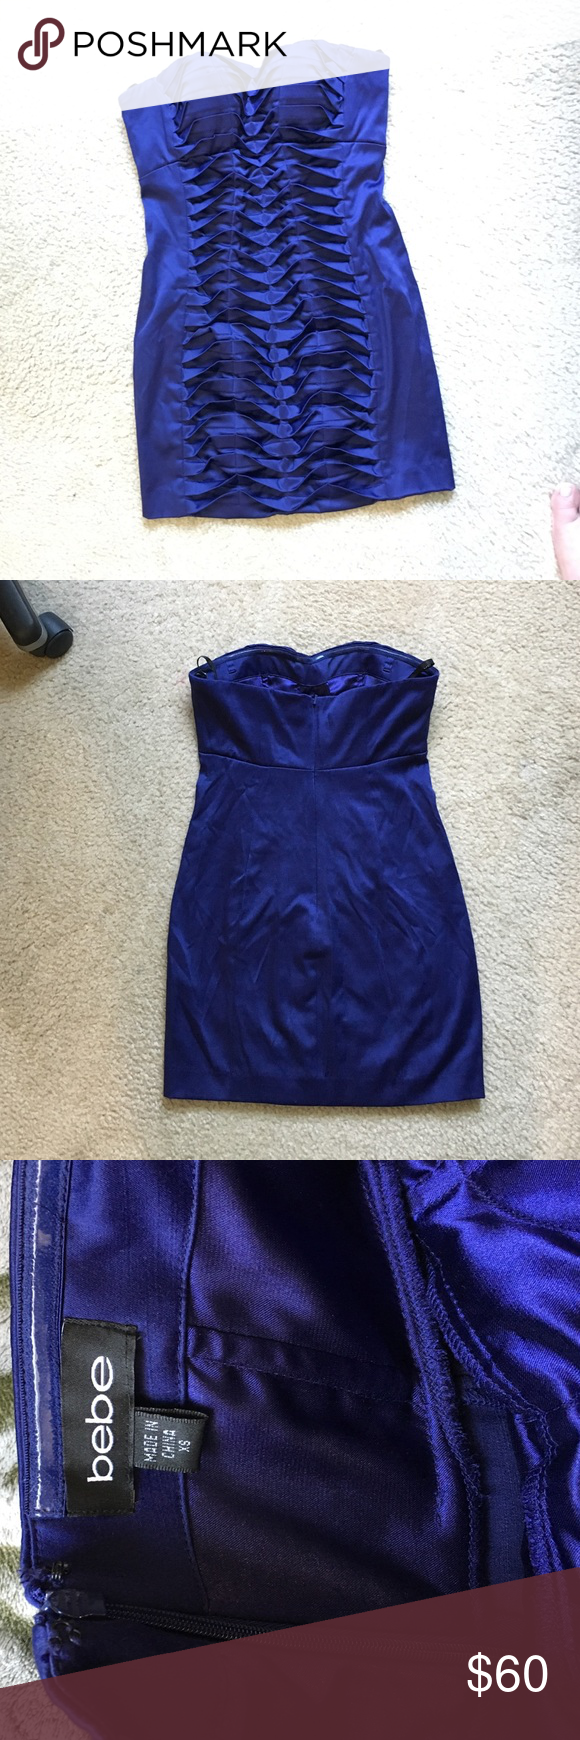 Bebe PIXIE dress Worn once!! Bebe navy dark blue PIXIE dress.  Fishtail detail in front.  Strapless.  Size XS.  Perfect condition. Pictures don't do it justice bebe Dresses Strapless